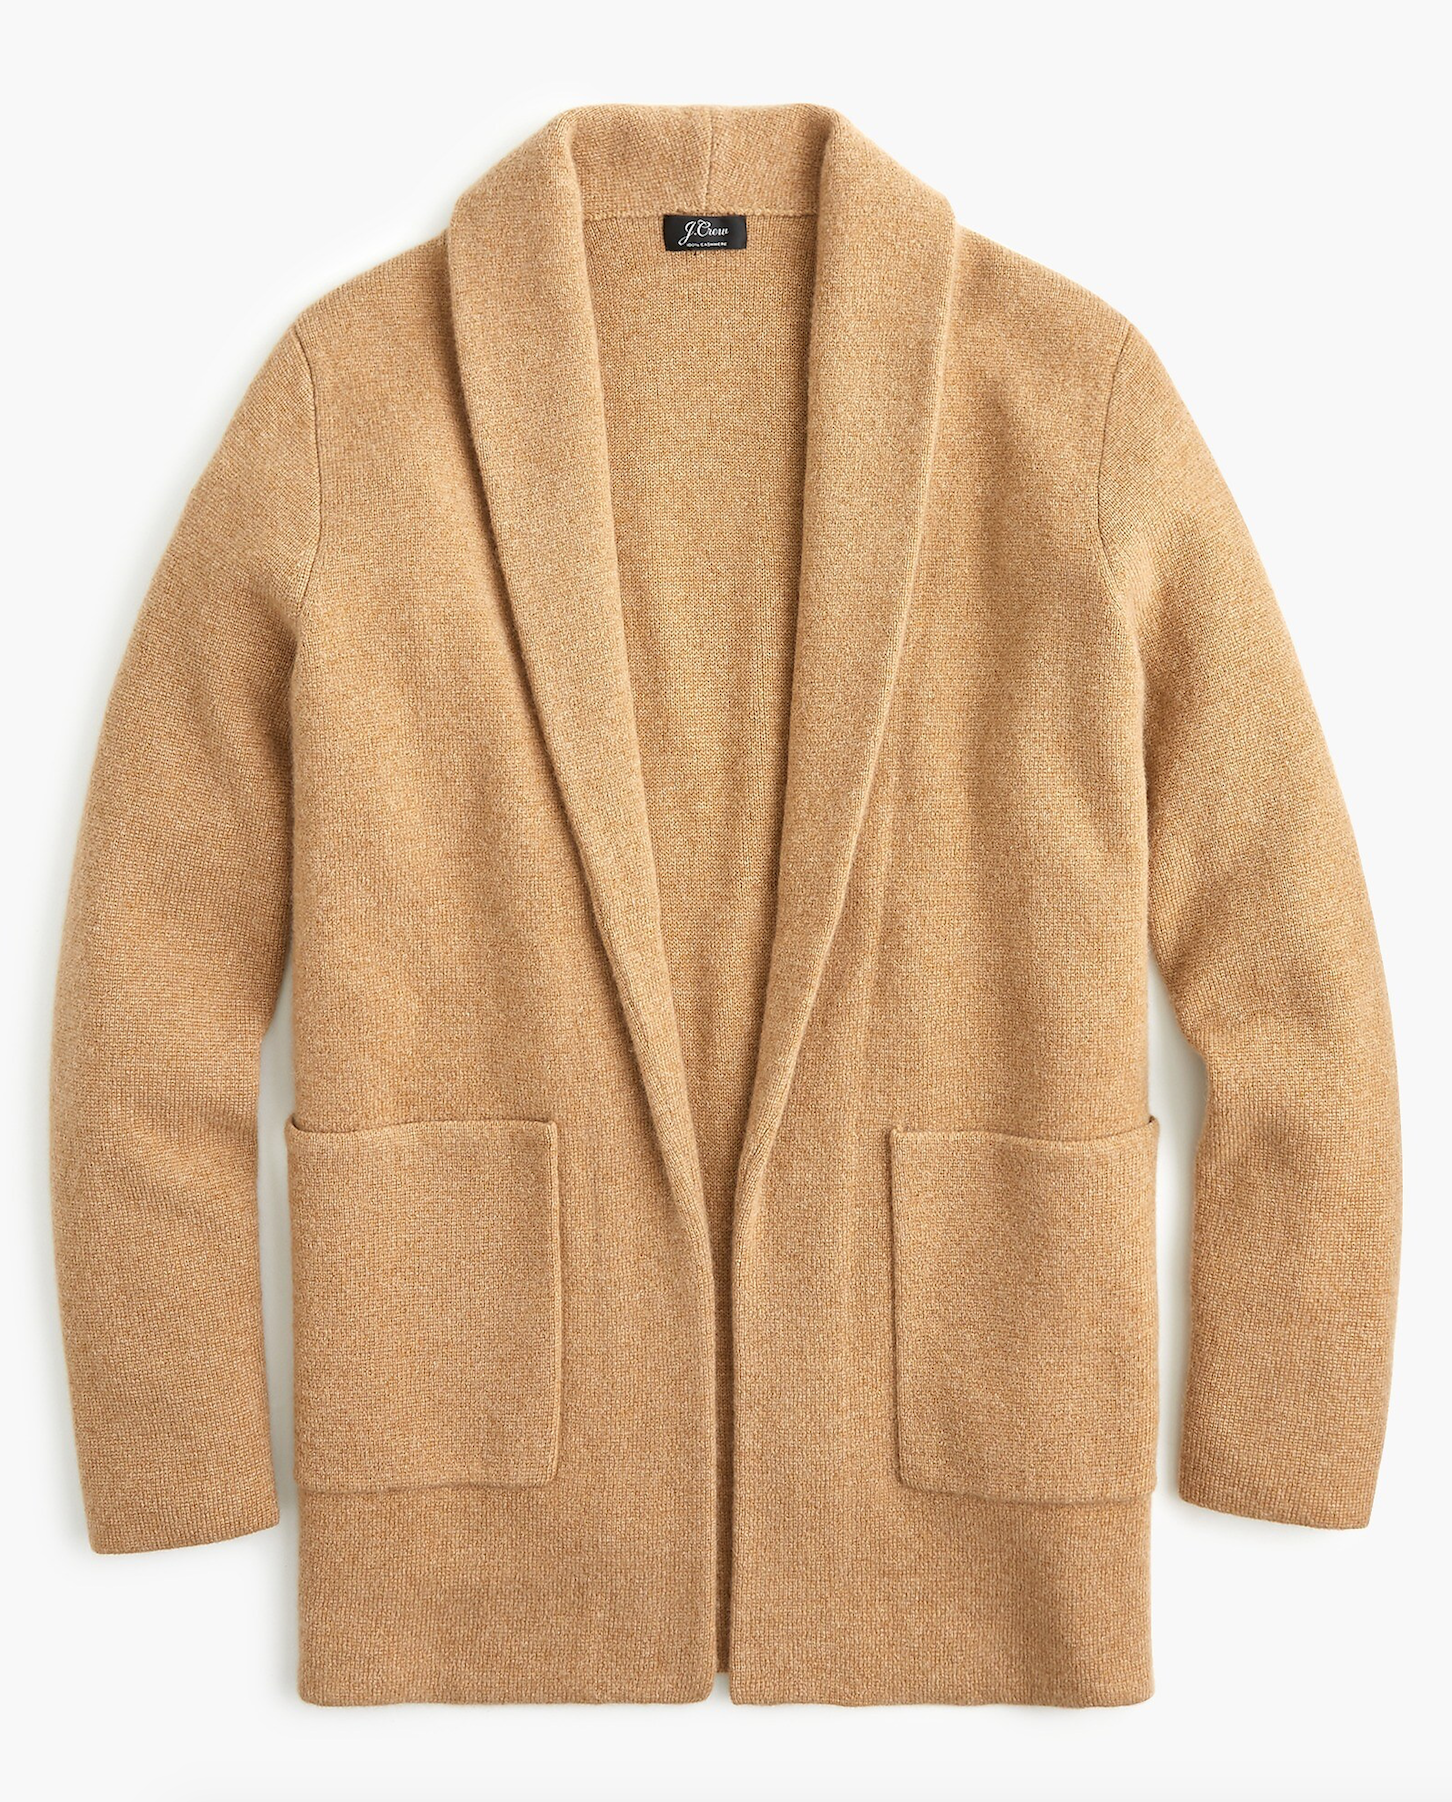 Camel Cashmere Sweater